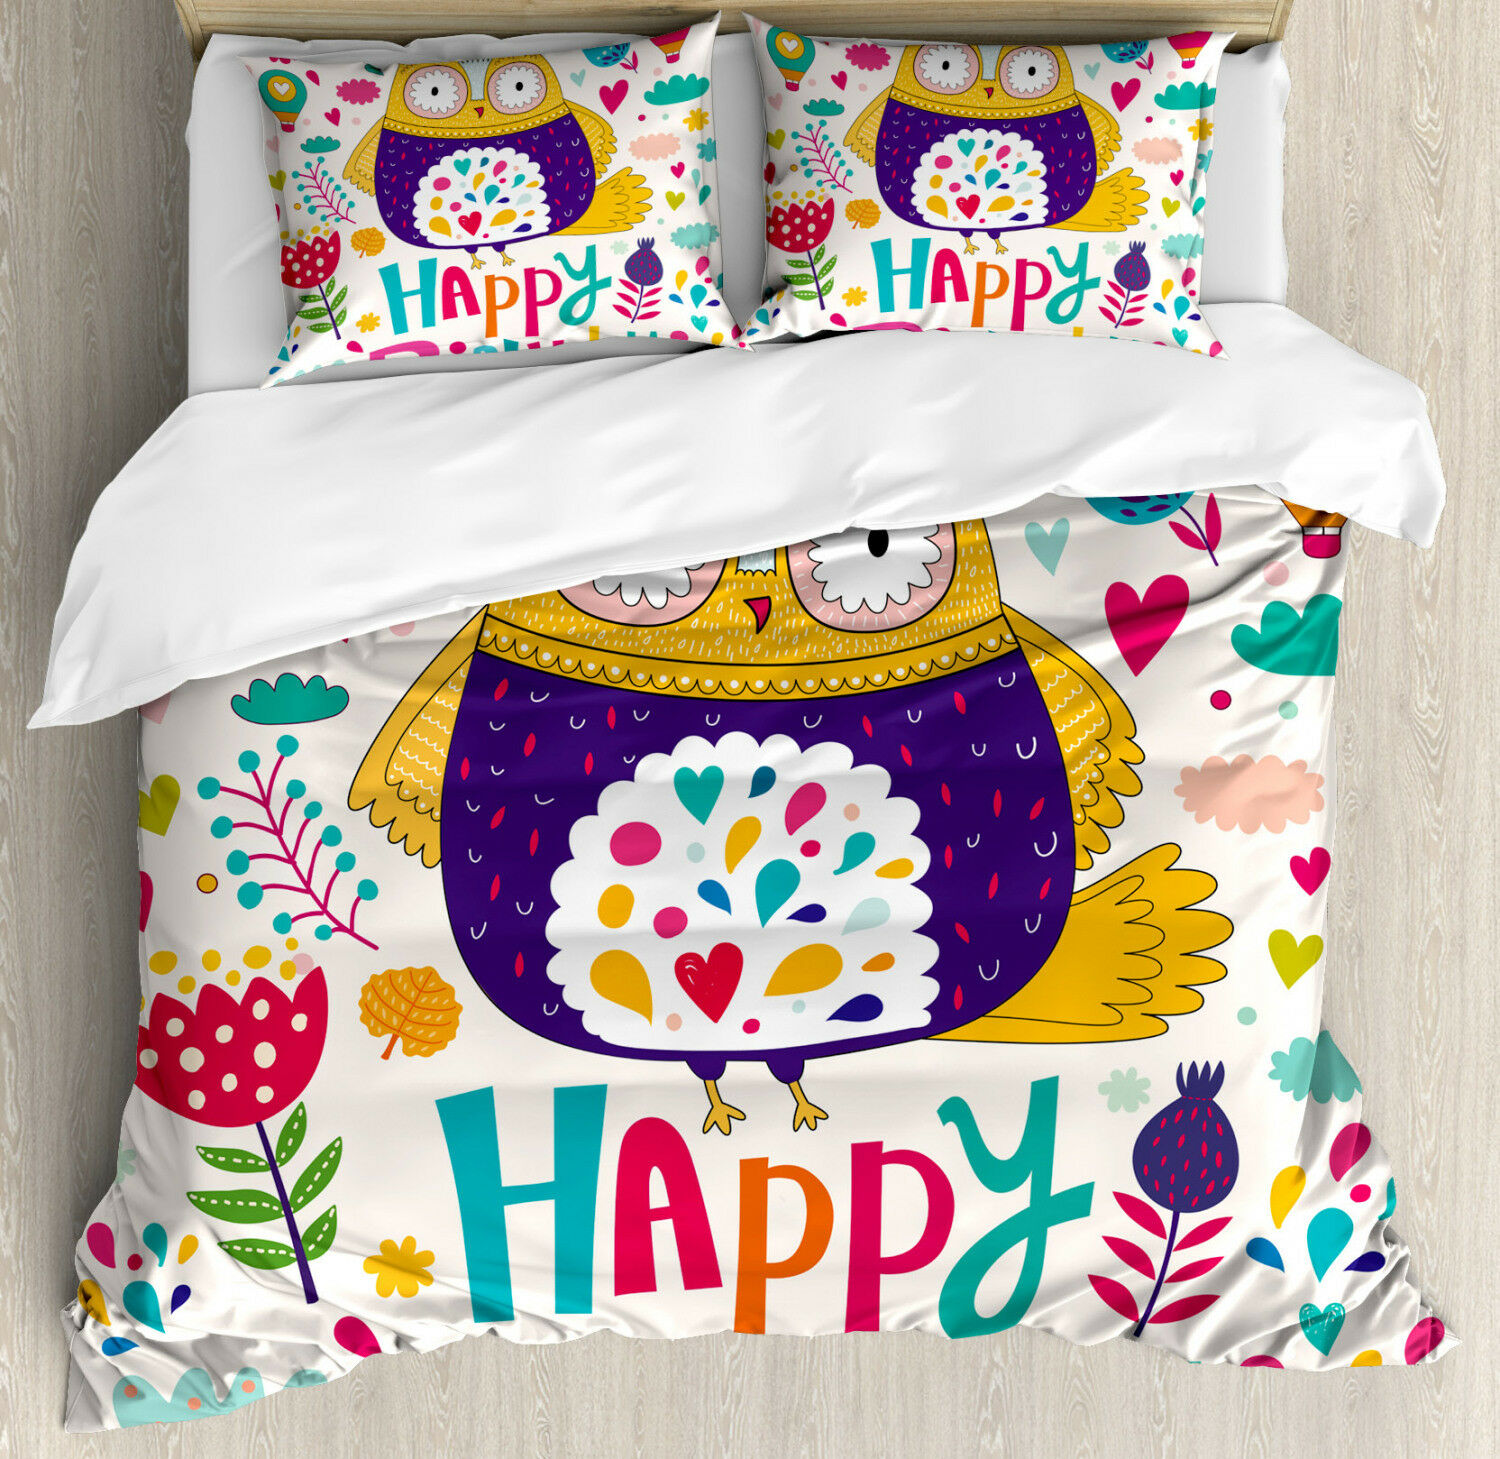 Owl Duvet Cover Set with Pillow Shams Funny Greeting Doodle Art Print